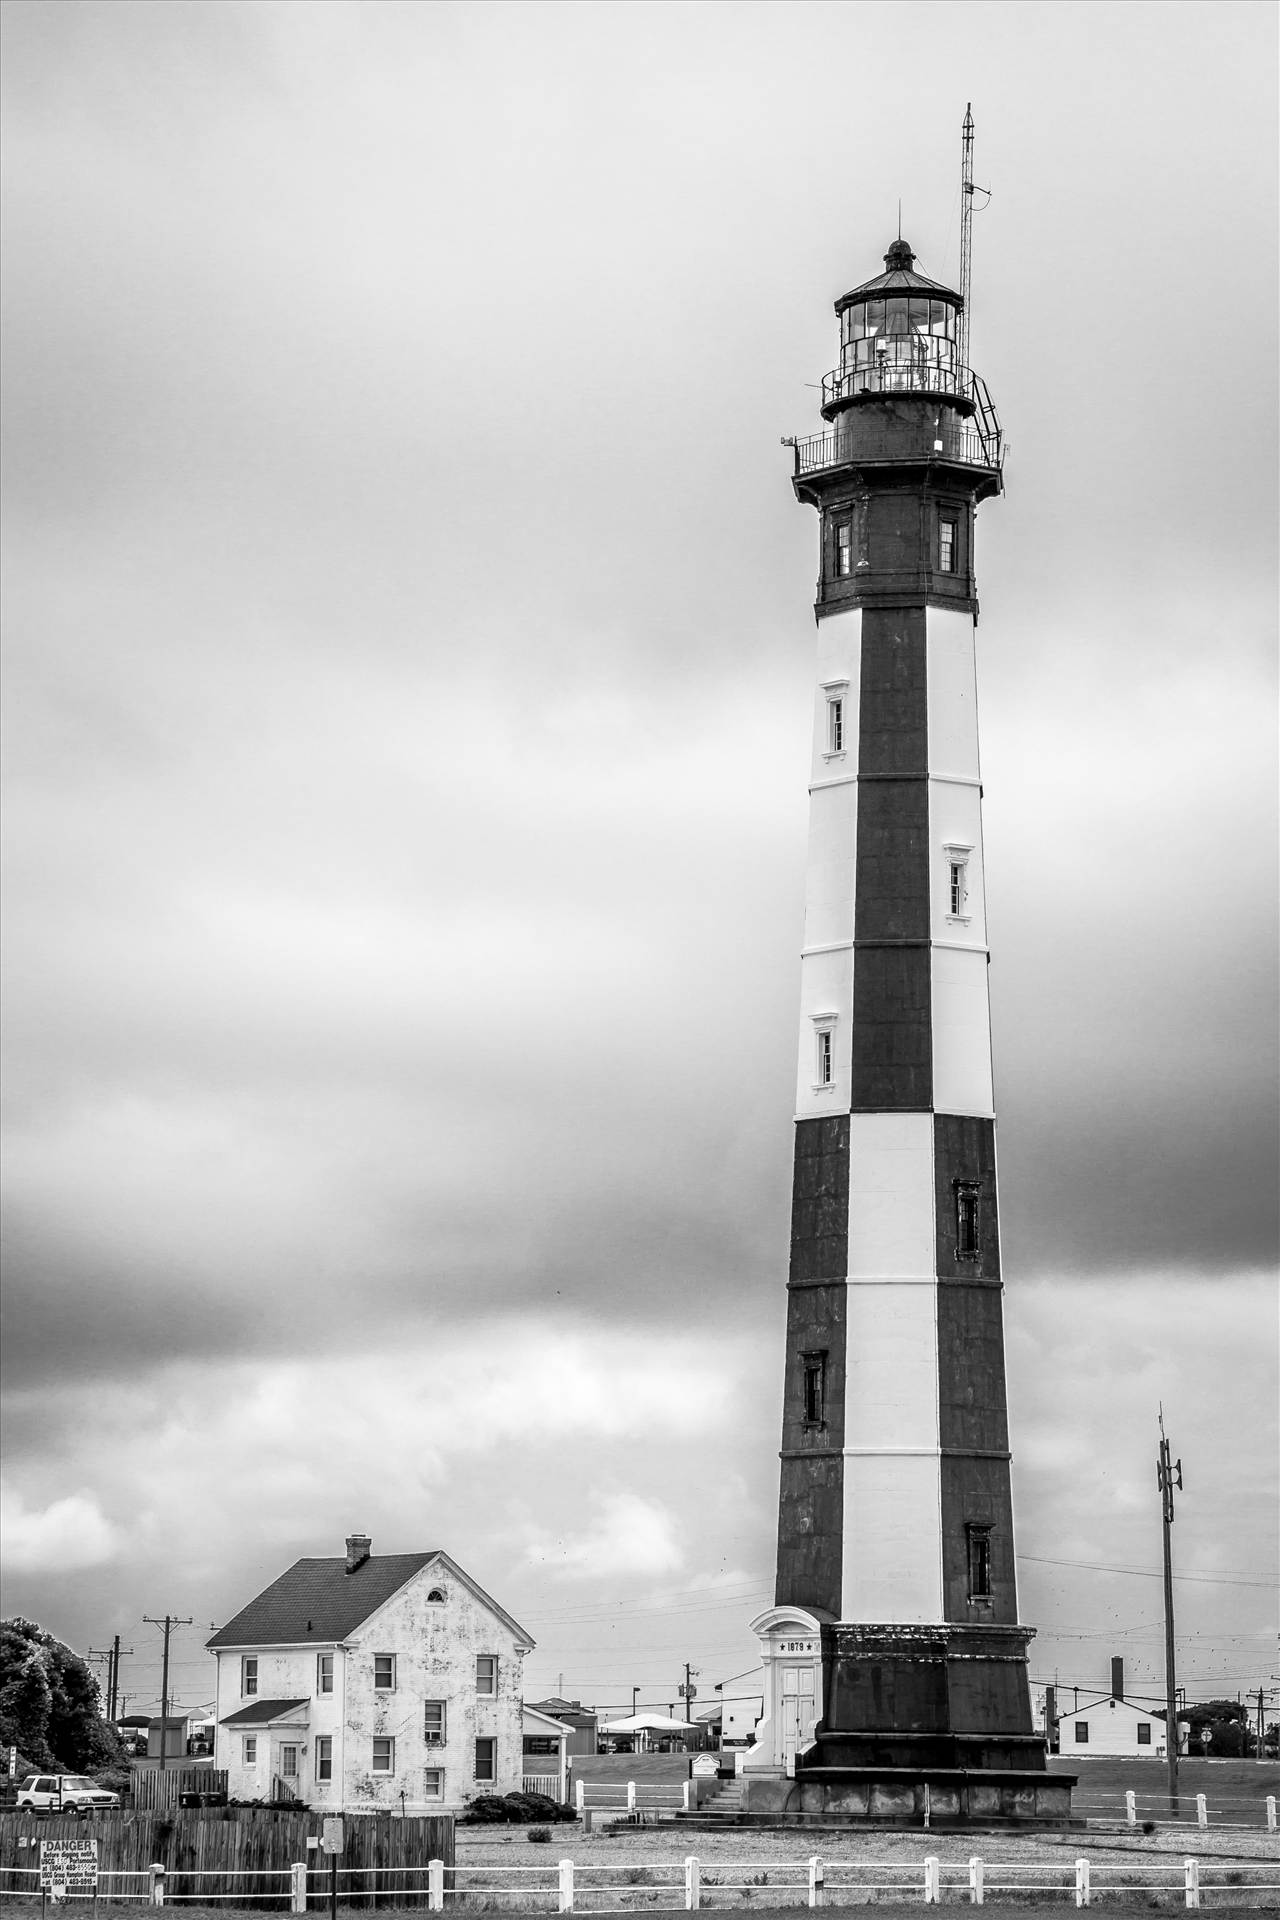 New Cape Henry Lighthouse No 1 - The new Cape Henry Lighthouse, in Virginia. by D Scott Smith